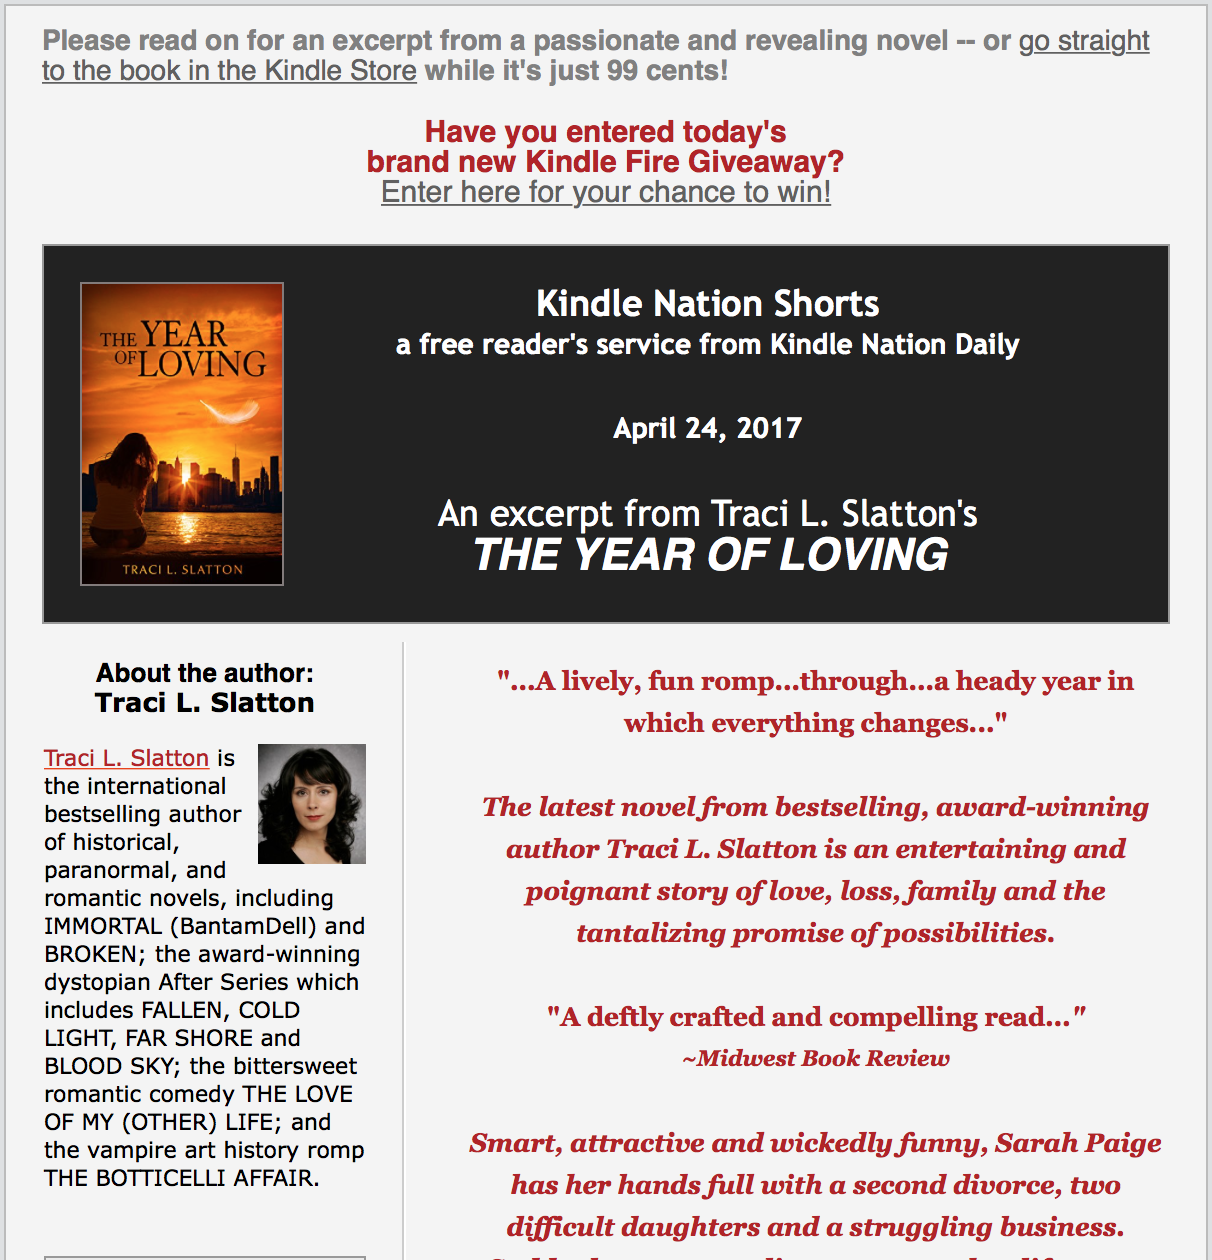 The Year of Loving: On Sale for a Limited Time